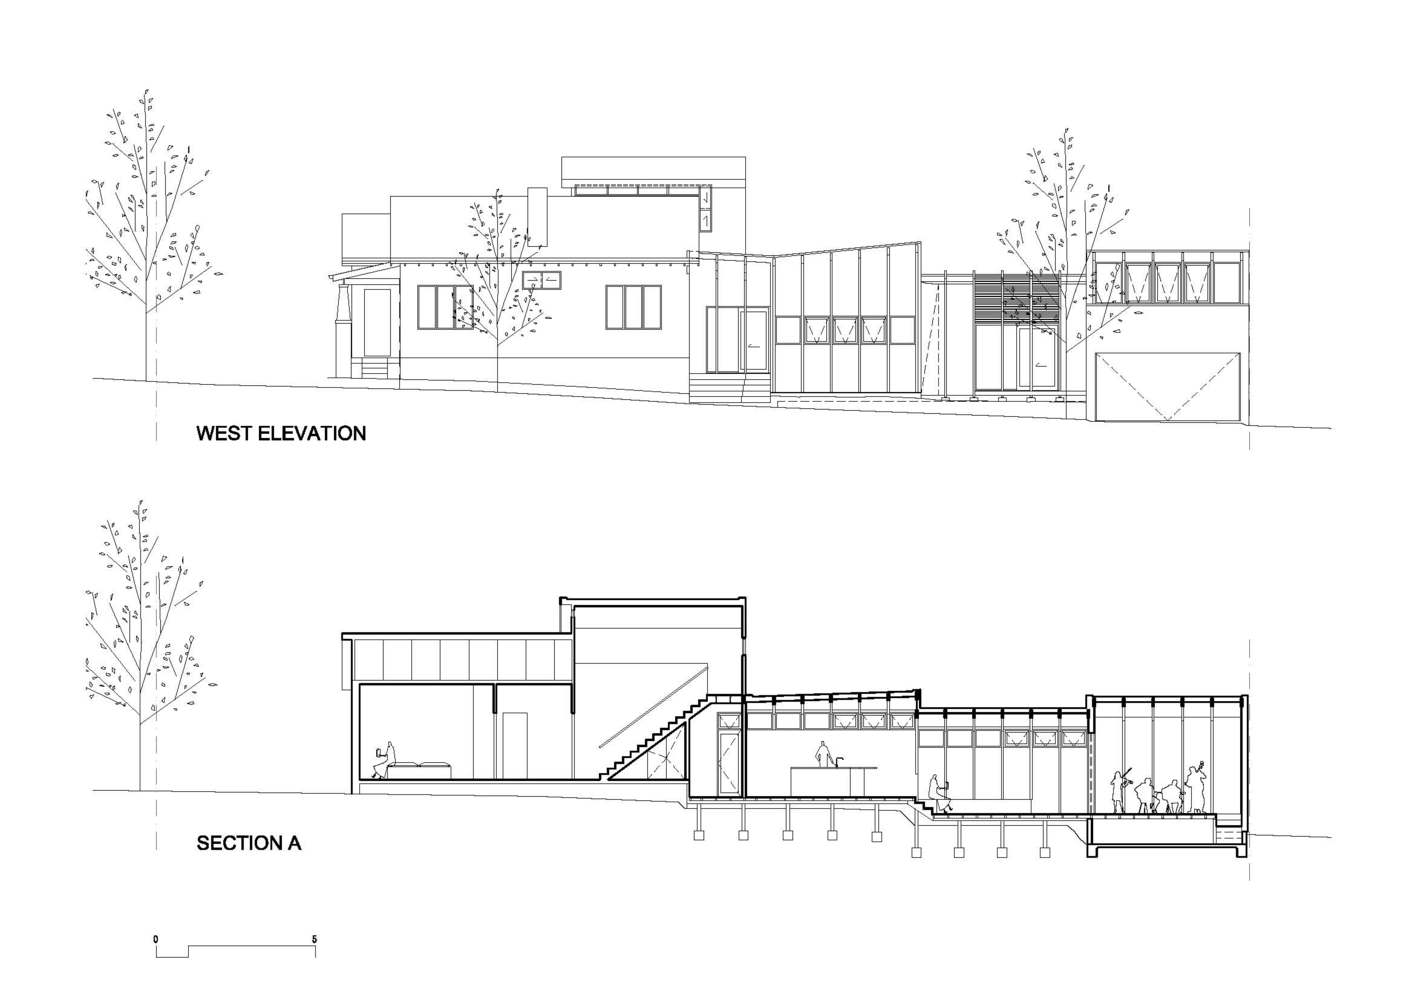 Rhythm house delia teschendorff architecture plans